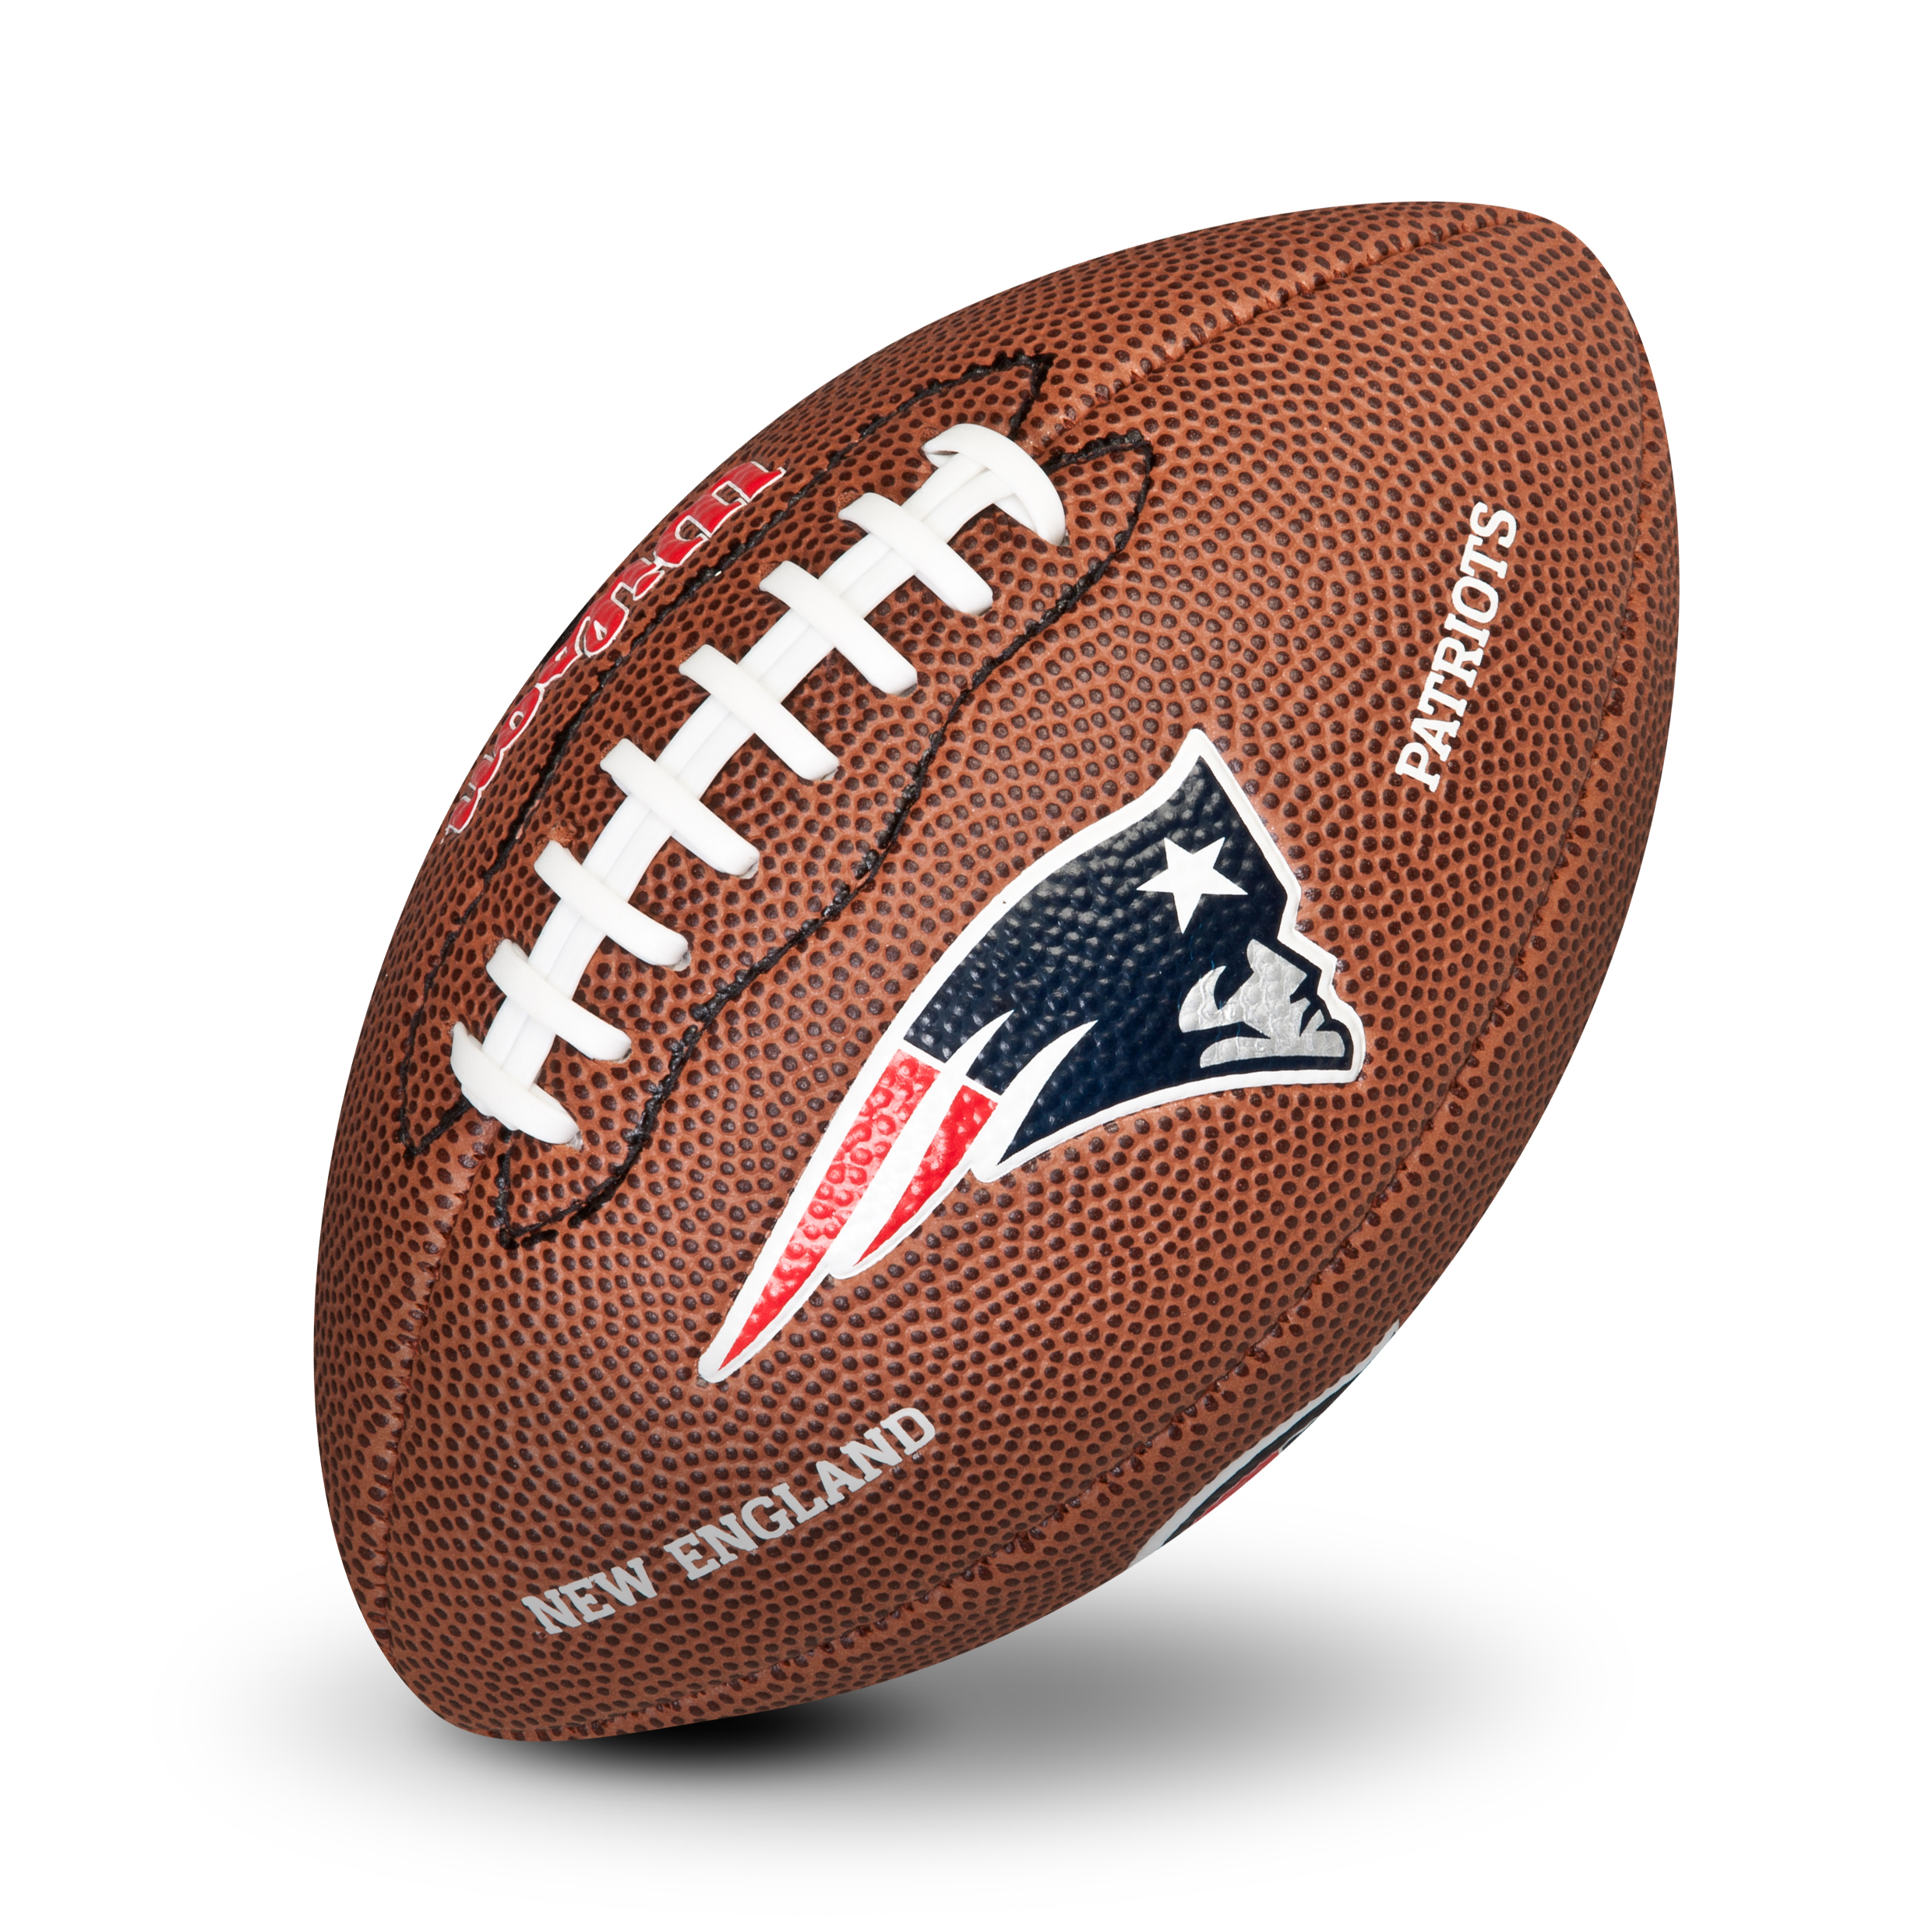 New England Patriots NFL Team Logo Mini Size Rubber Football